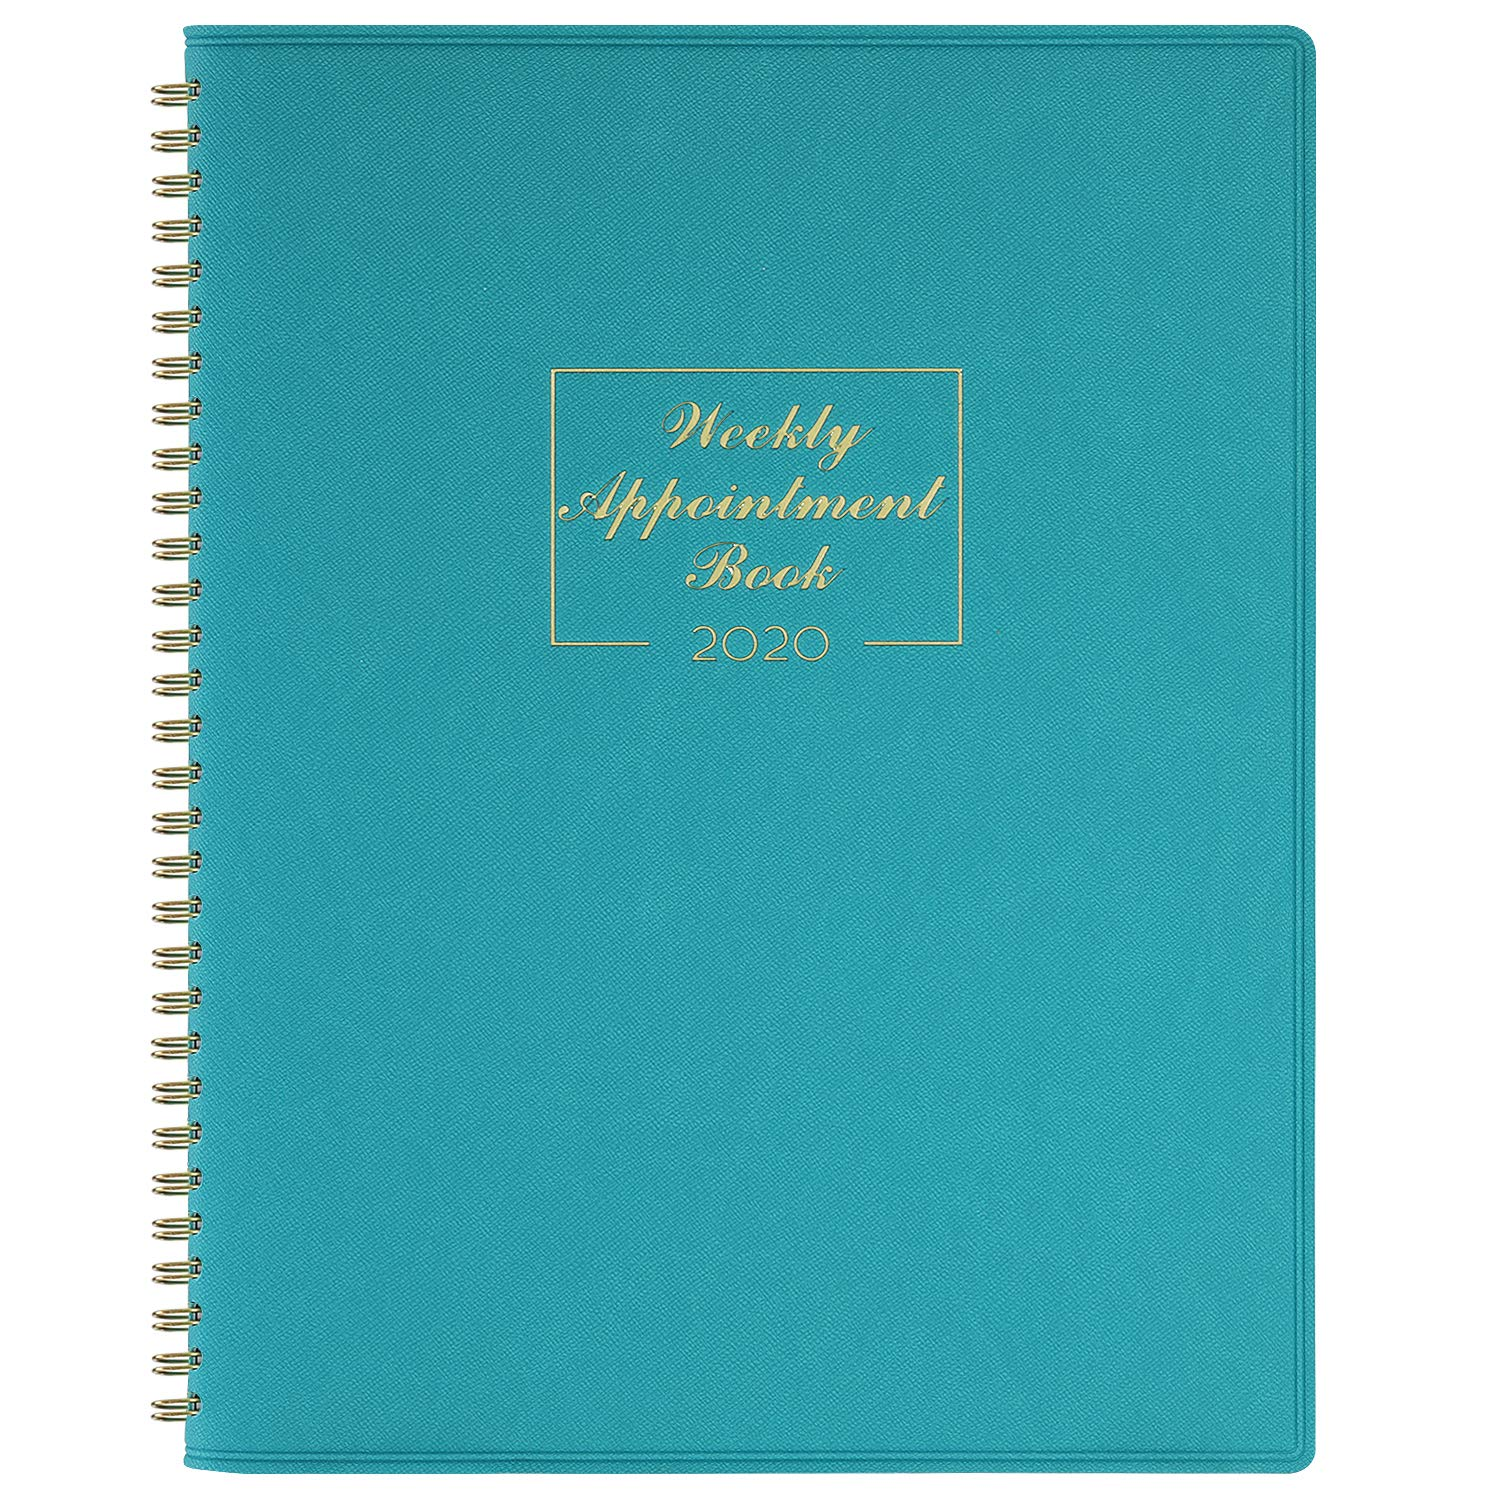 2021 Weekly Appointment Book & Planner – Daily Hourly Planner 8.4″ x 10.6″, Jan – Dec, 15-Minute Interval, Flexible Soft Cover, Twin-Wire Binding